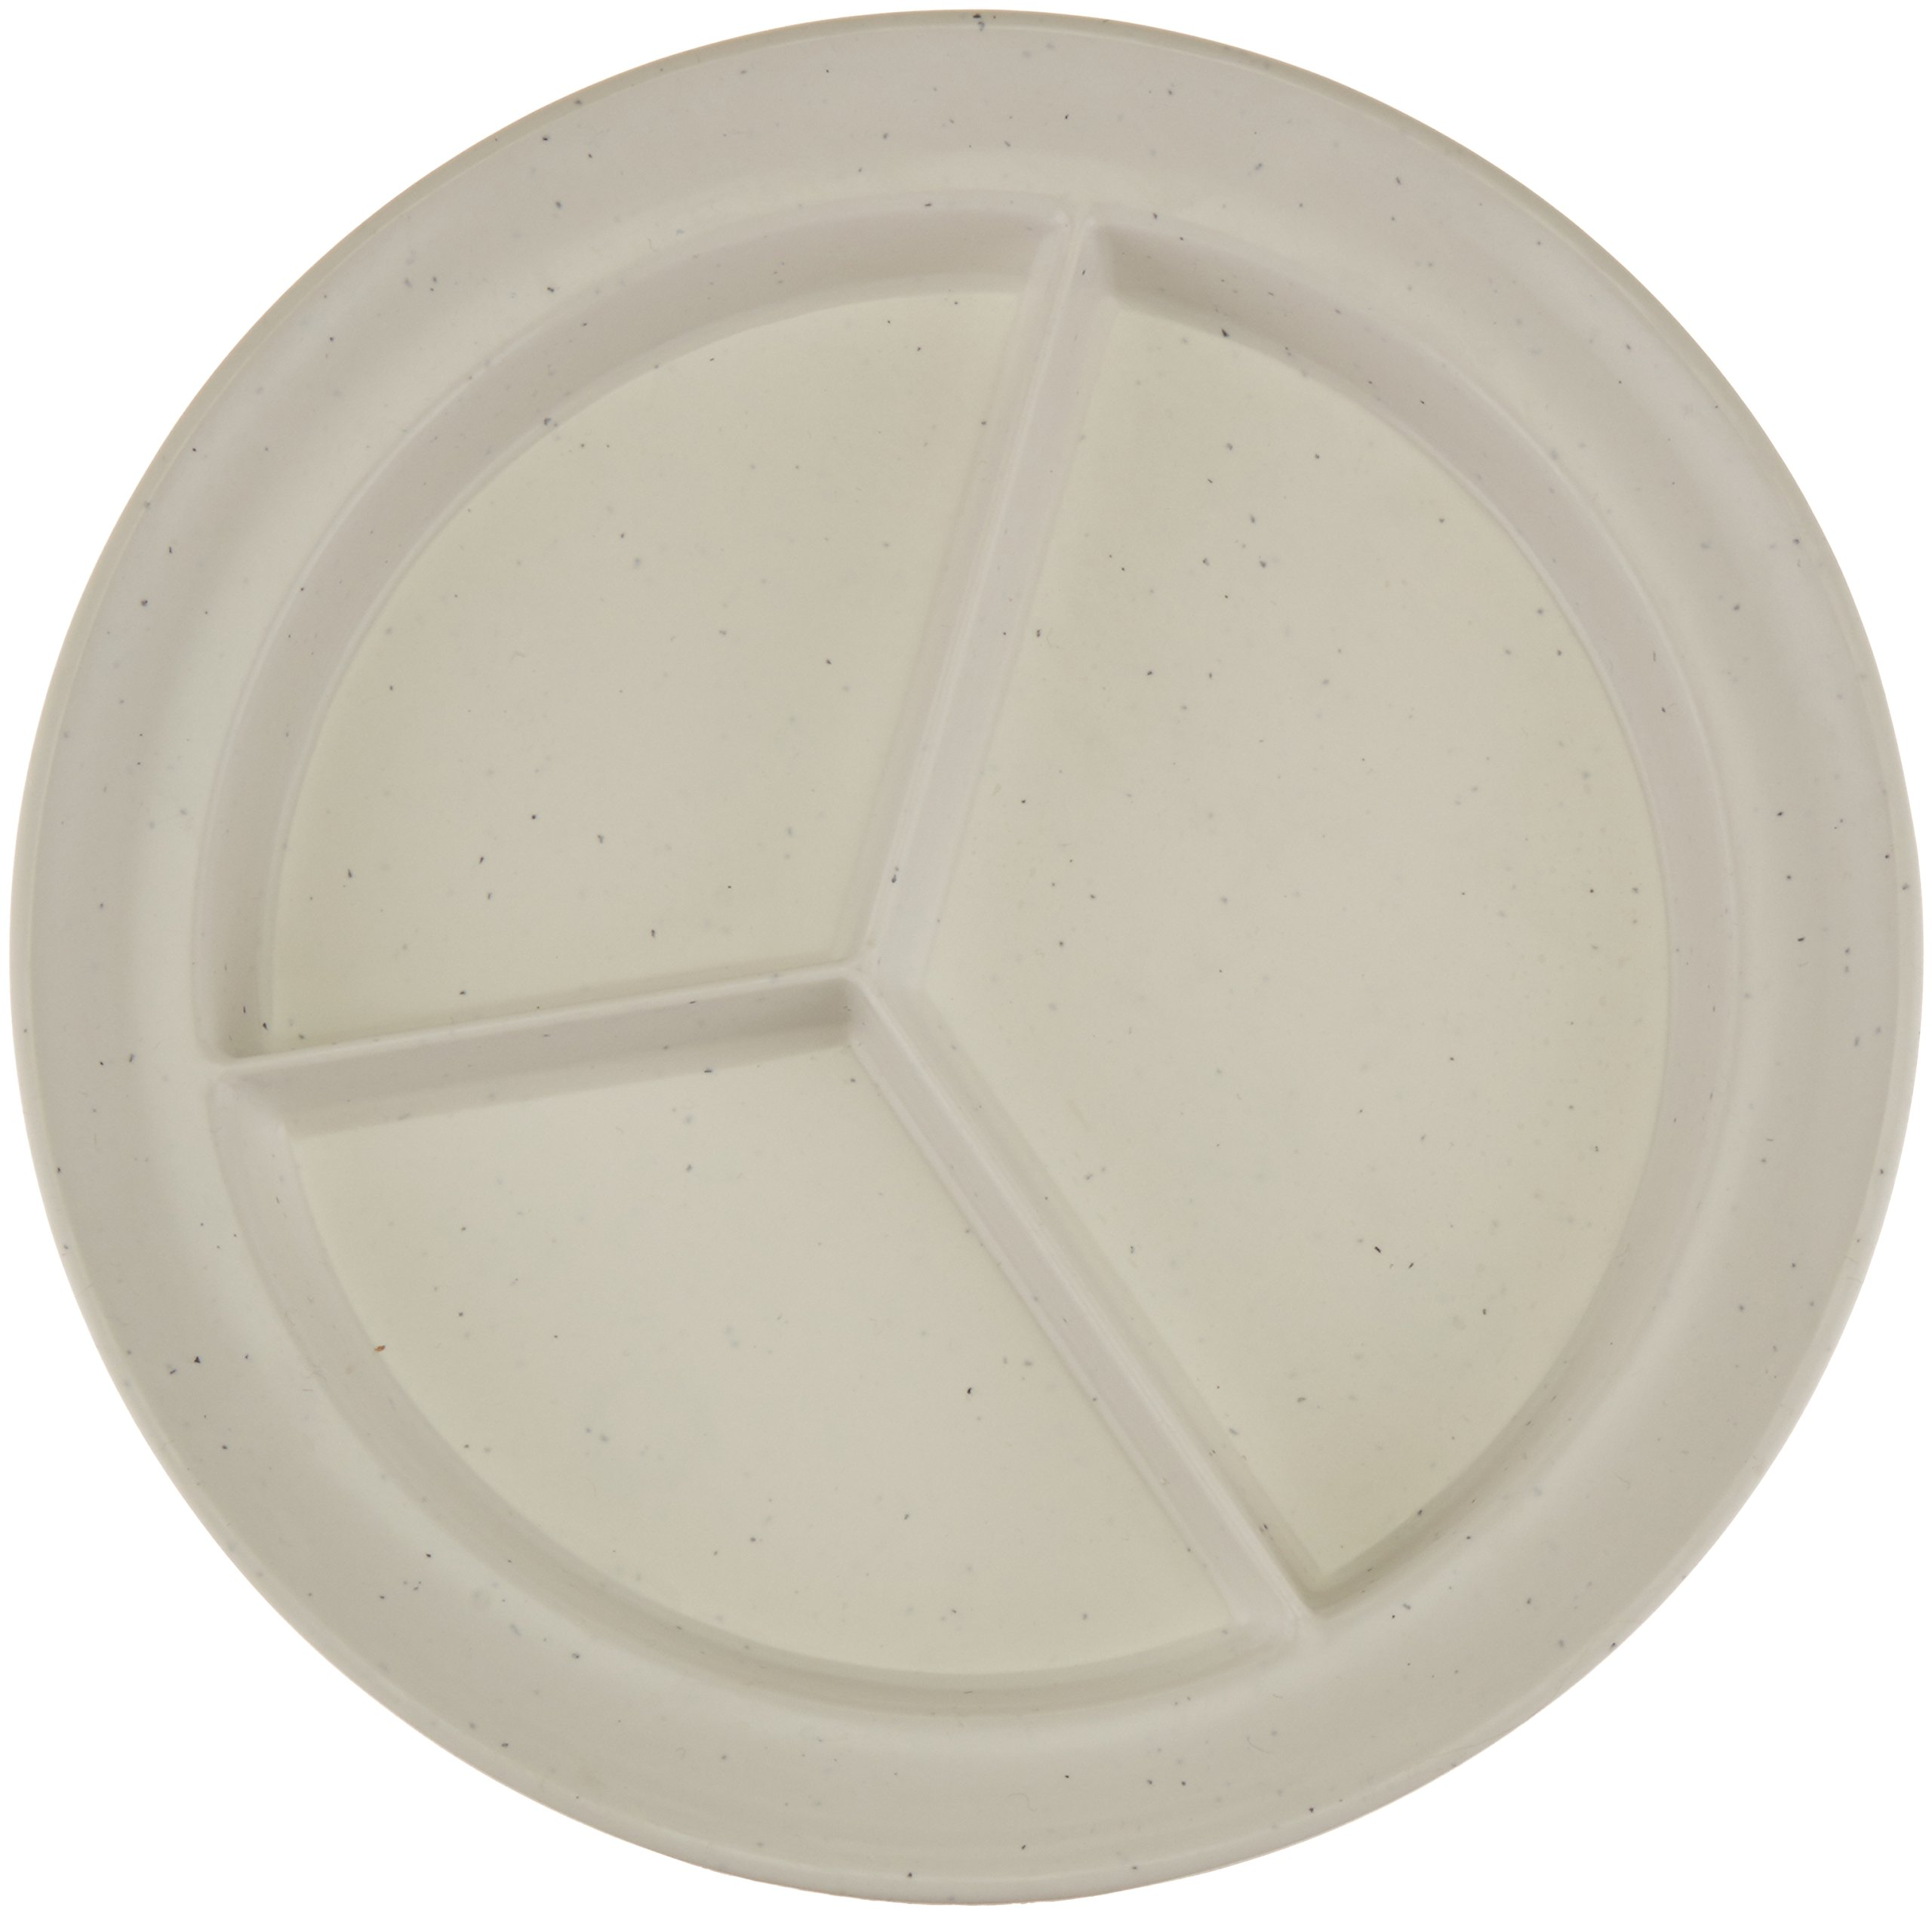 Sammons Preston Compartment Dish, Light Grey Fleck, Durable Polyester Dishes Separate Food Into 3 Sections, 8.75'' Diameter.75'' High Sides & .75'' Rim for Scooping, Nonskid Base, Adaptive Dining Aid